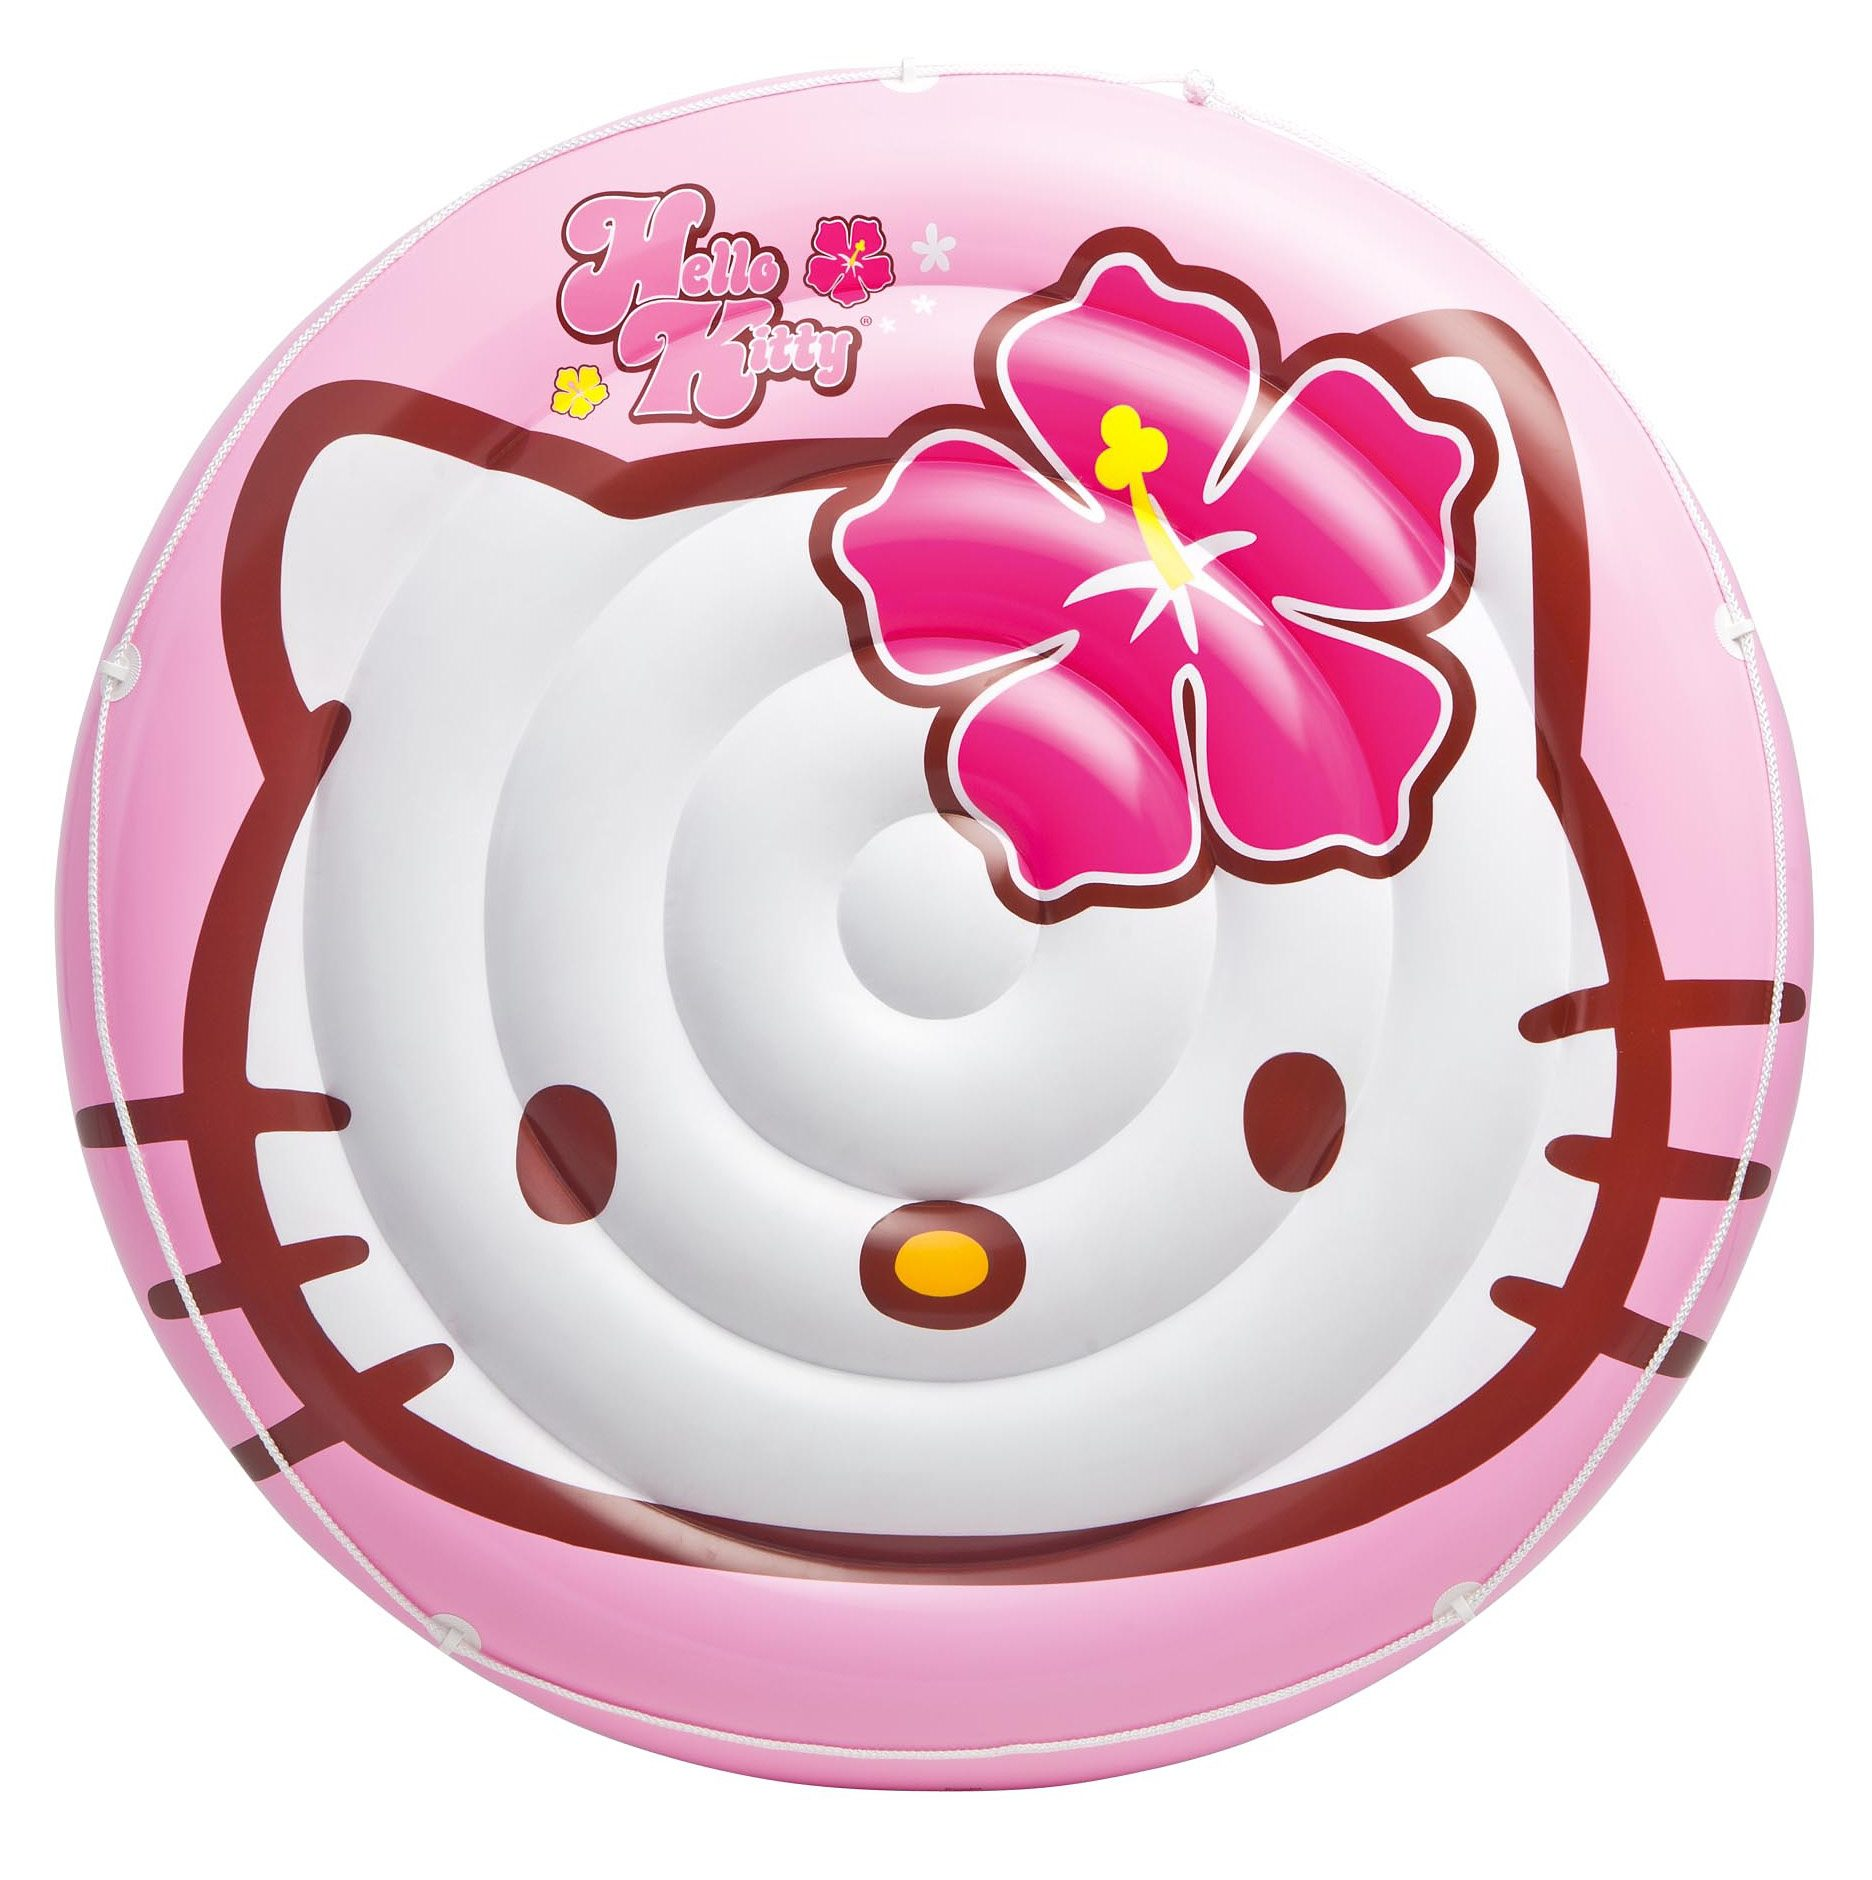 Intex Badeinsel, »Hello Kitty«